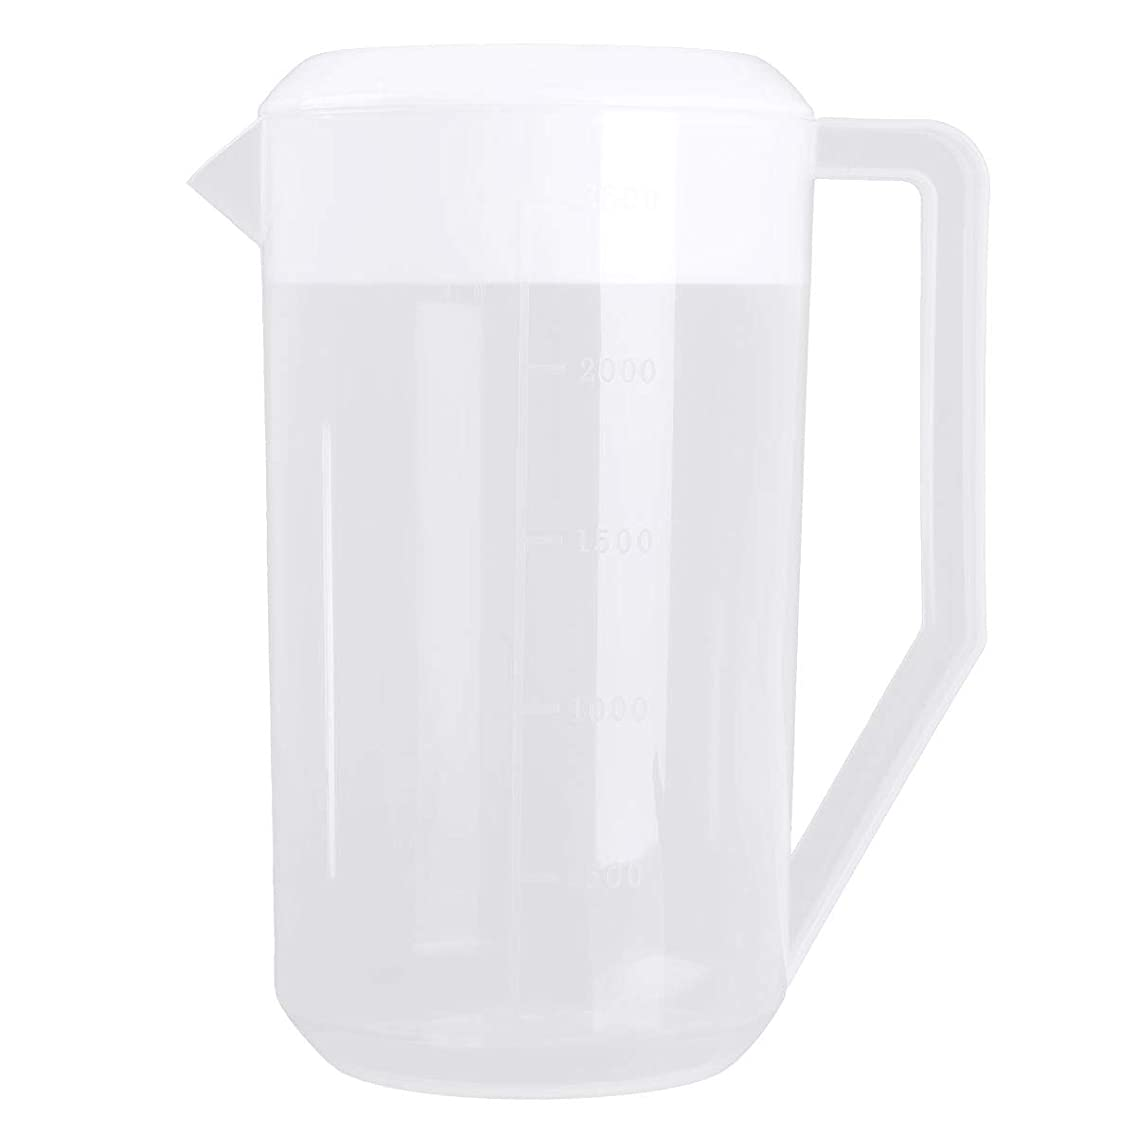 CHICTRY 2500ML Plastic Measuring Water Pitcher Jug Large Capacity Beverage Drink Pitcher with Lid and Handle for Cold Water Ice Tea Juice Beer White One Size